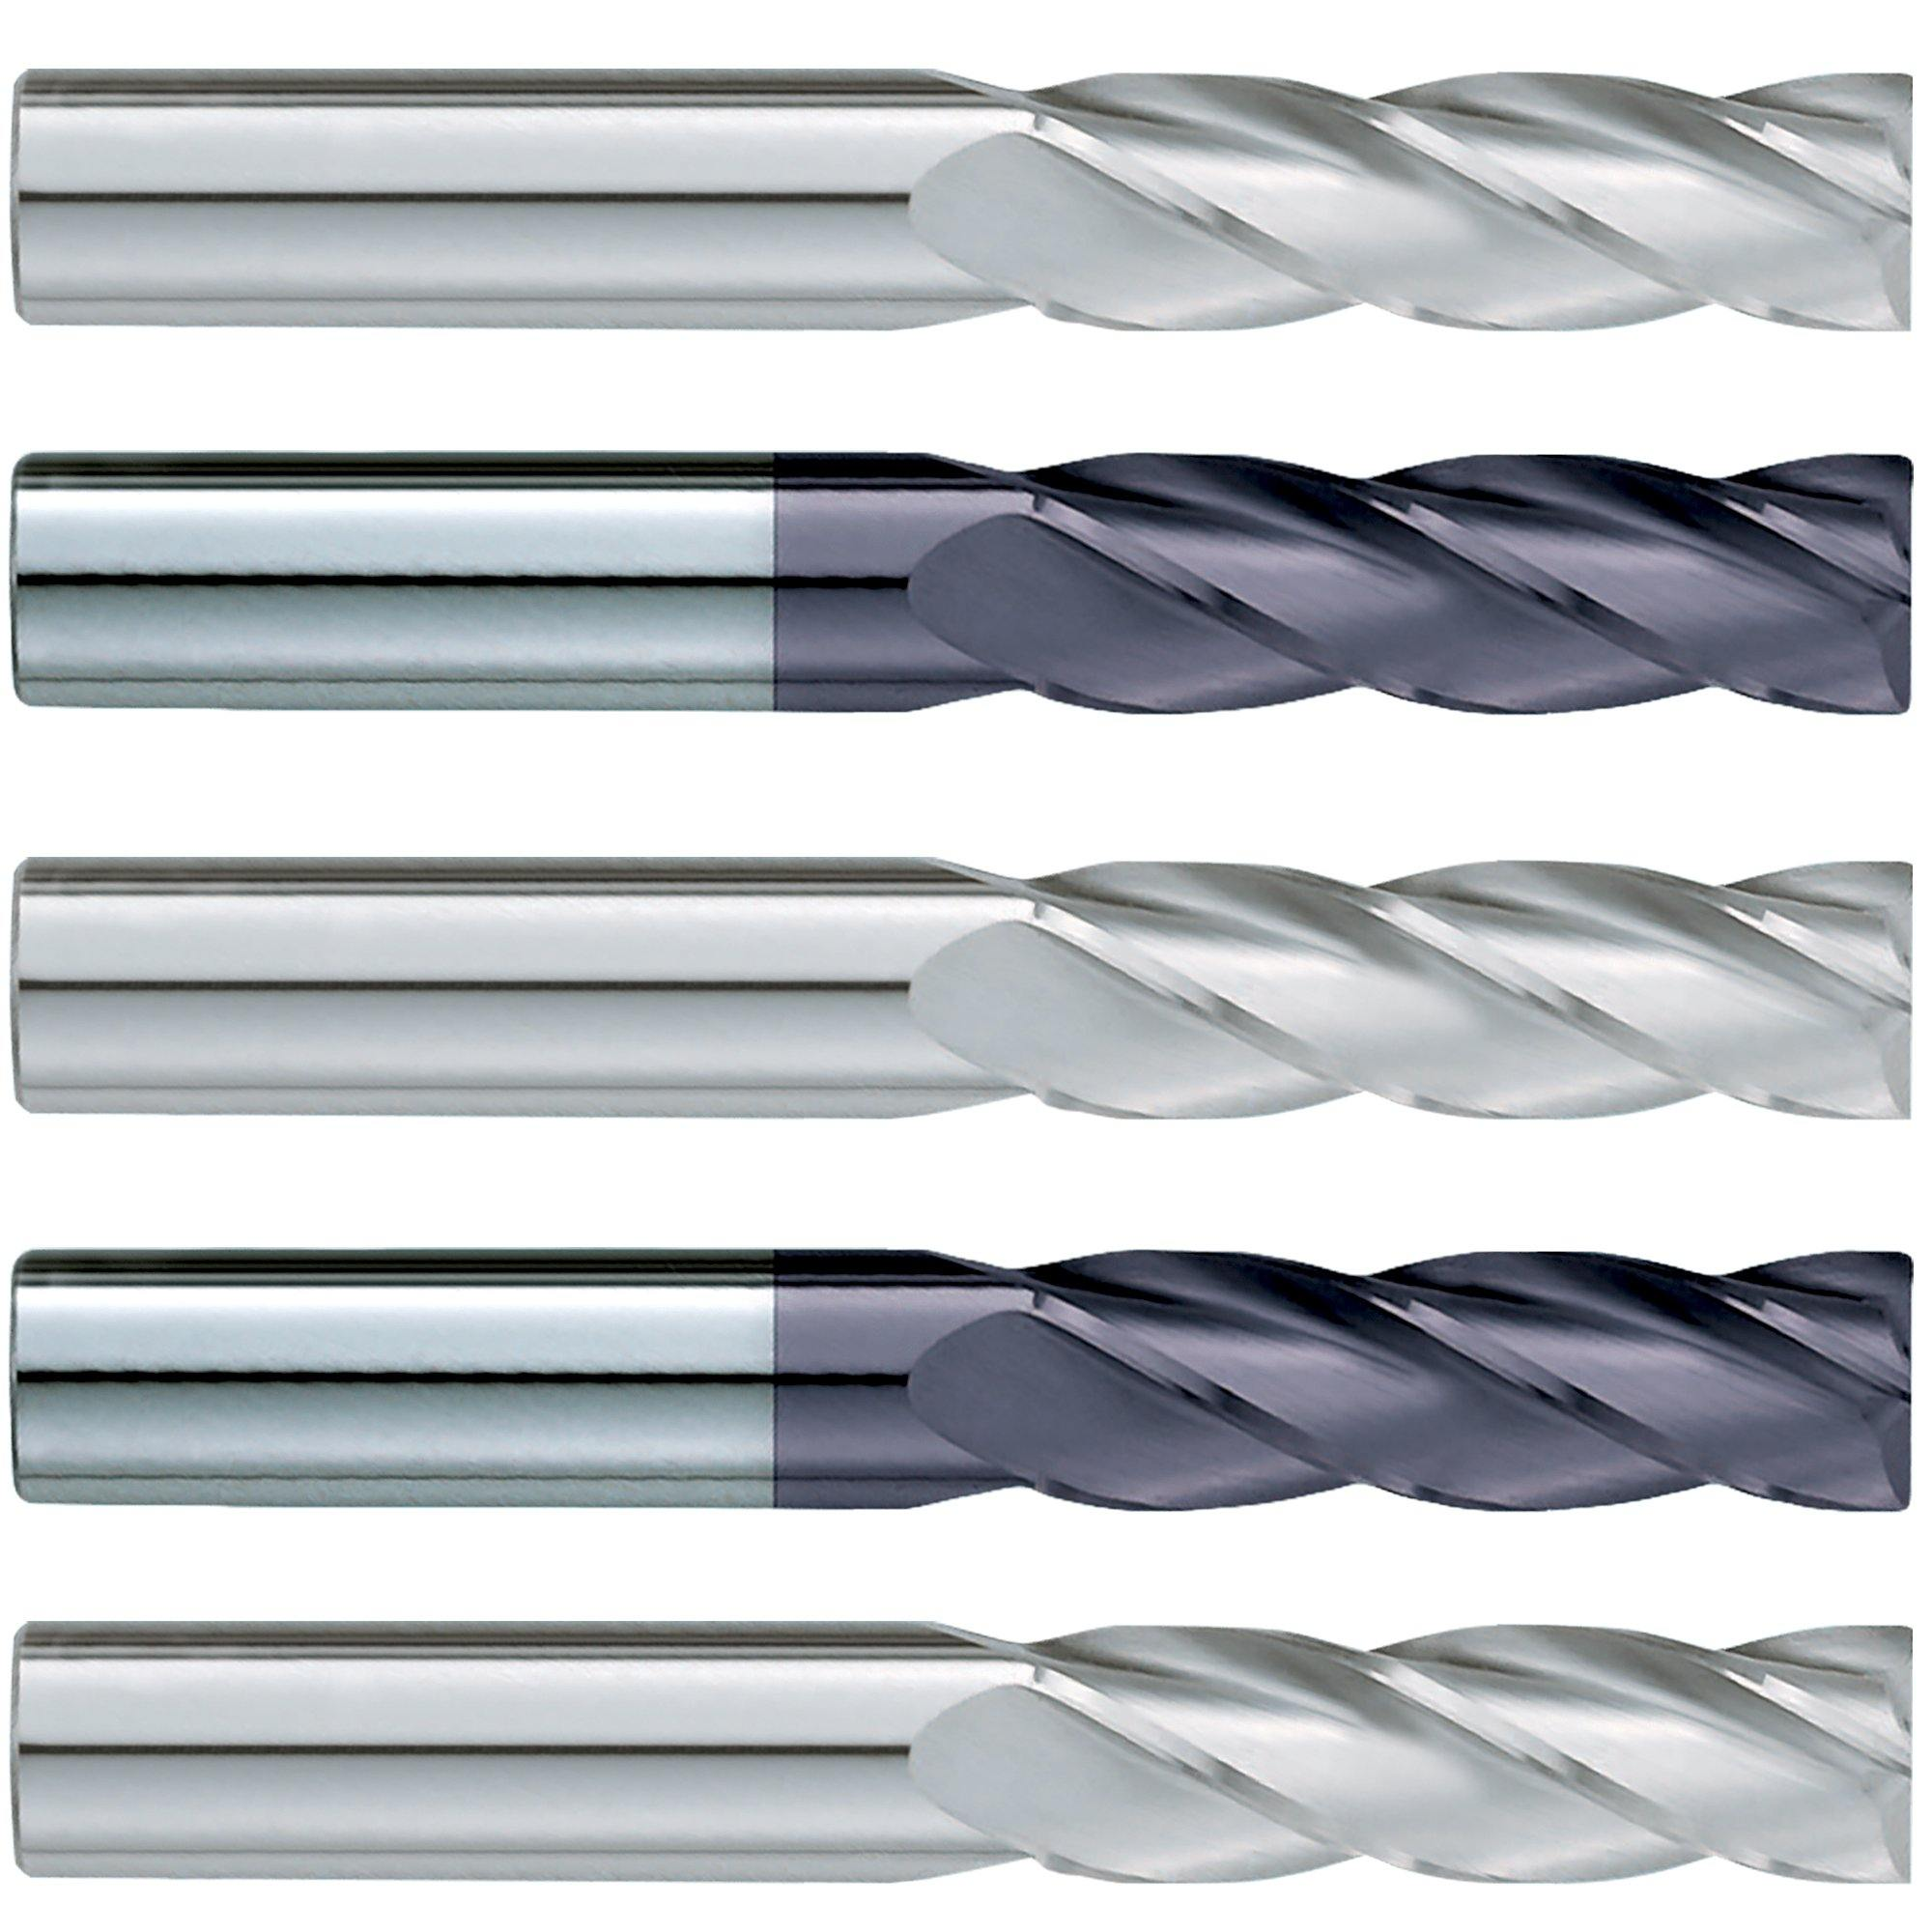 "(5 Pack) 1/2"" x 2"" x 4"" USA Long Square Carbide End Mill - End Mill Store"